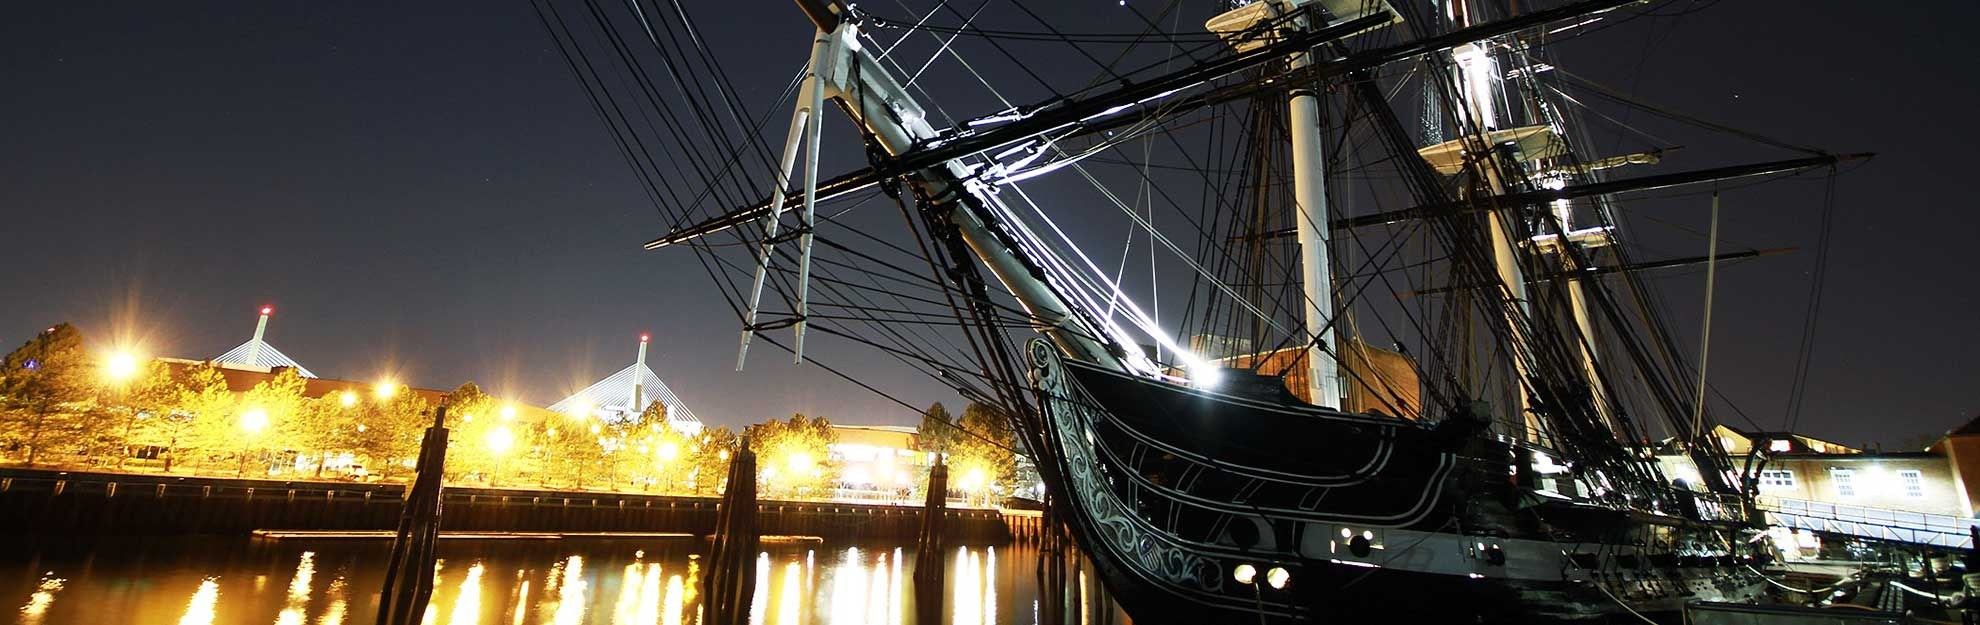 USS Constitution at the Boston harbour quay at night.